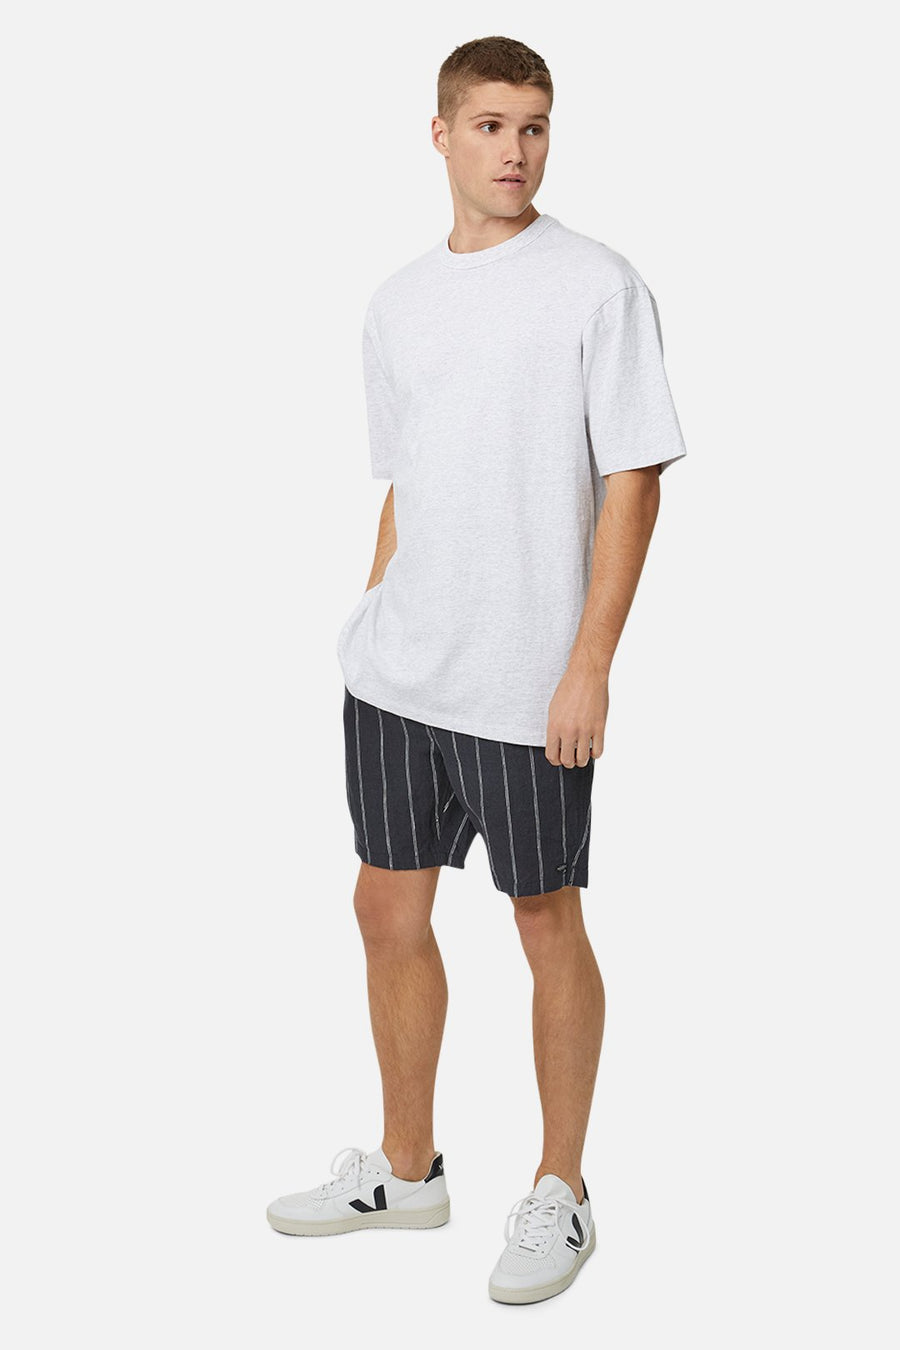 The Torres Shorts